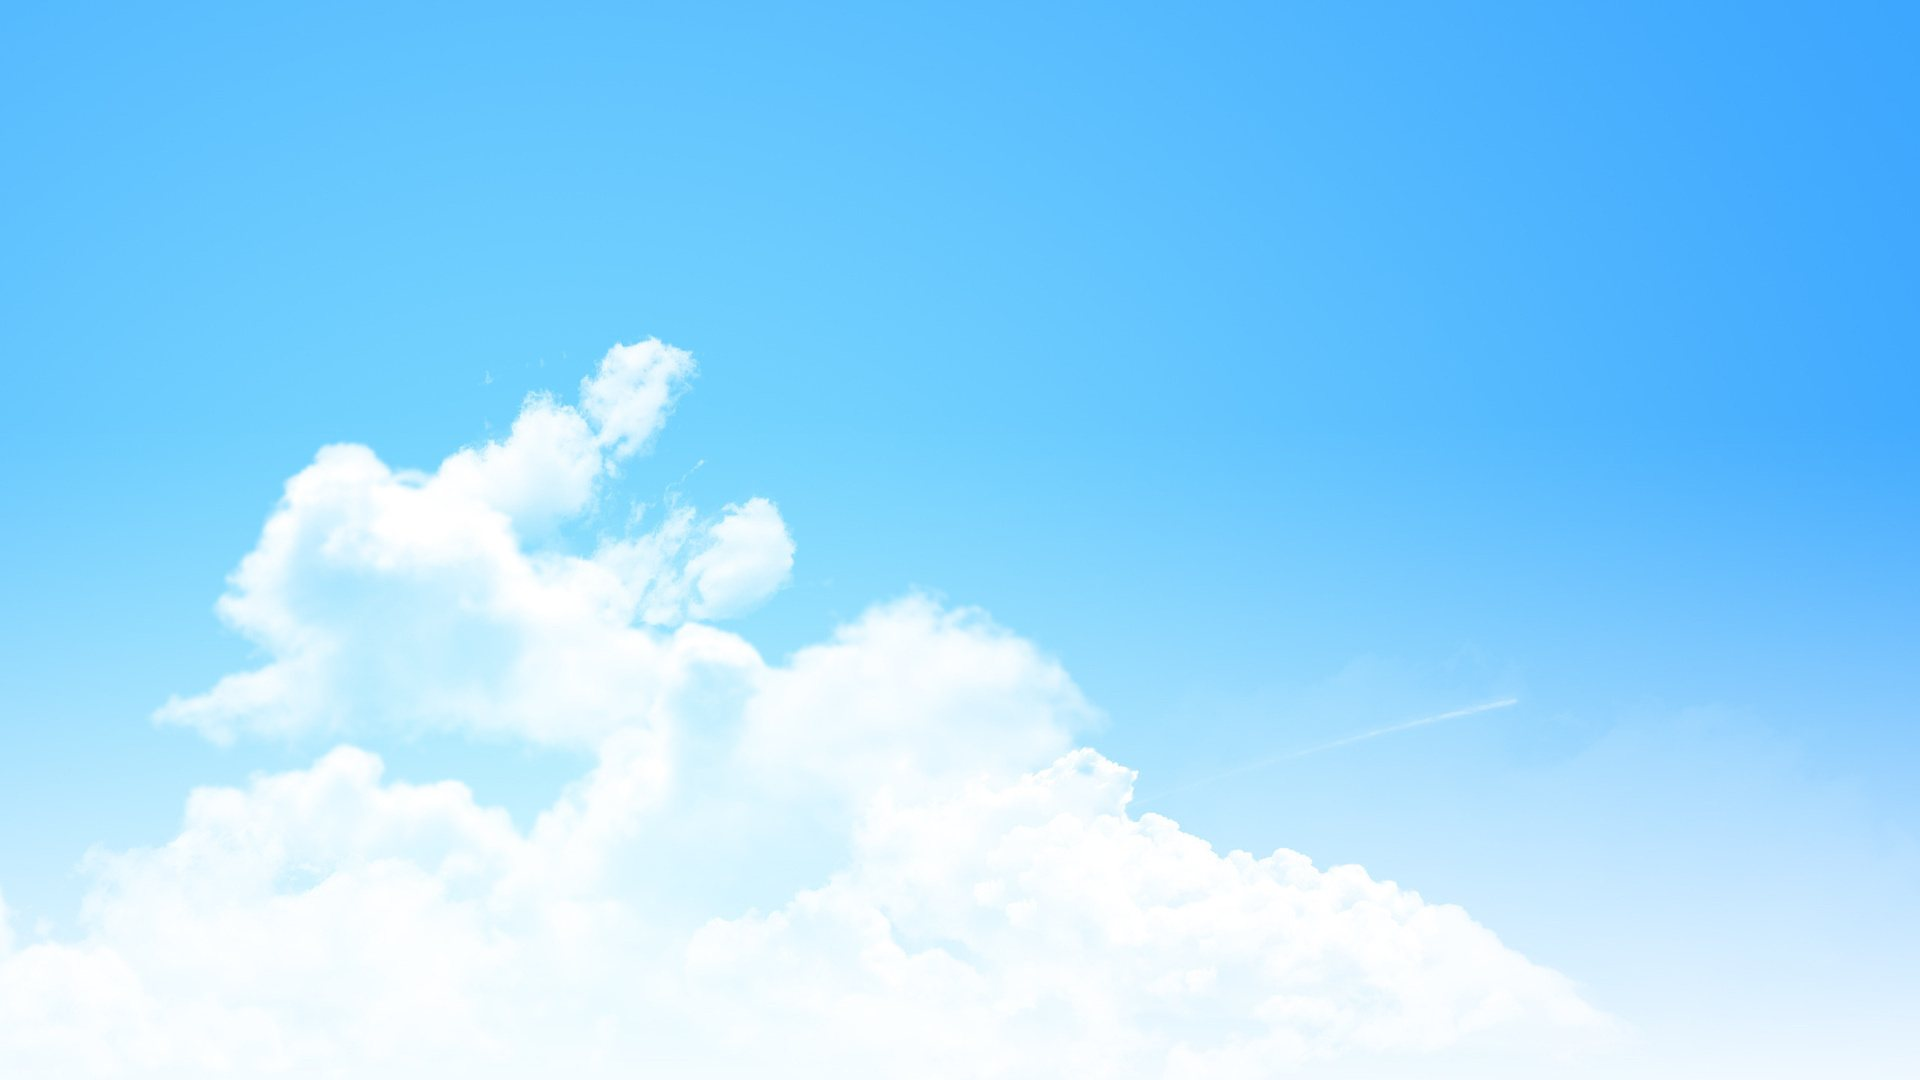 Clouds Wallpaper 038